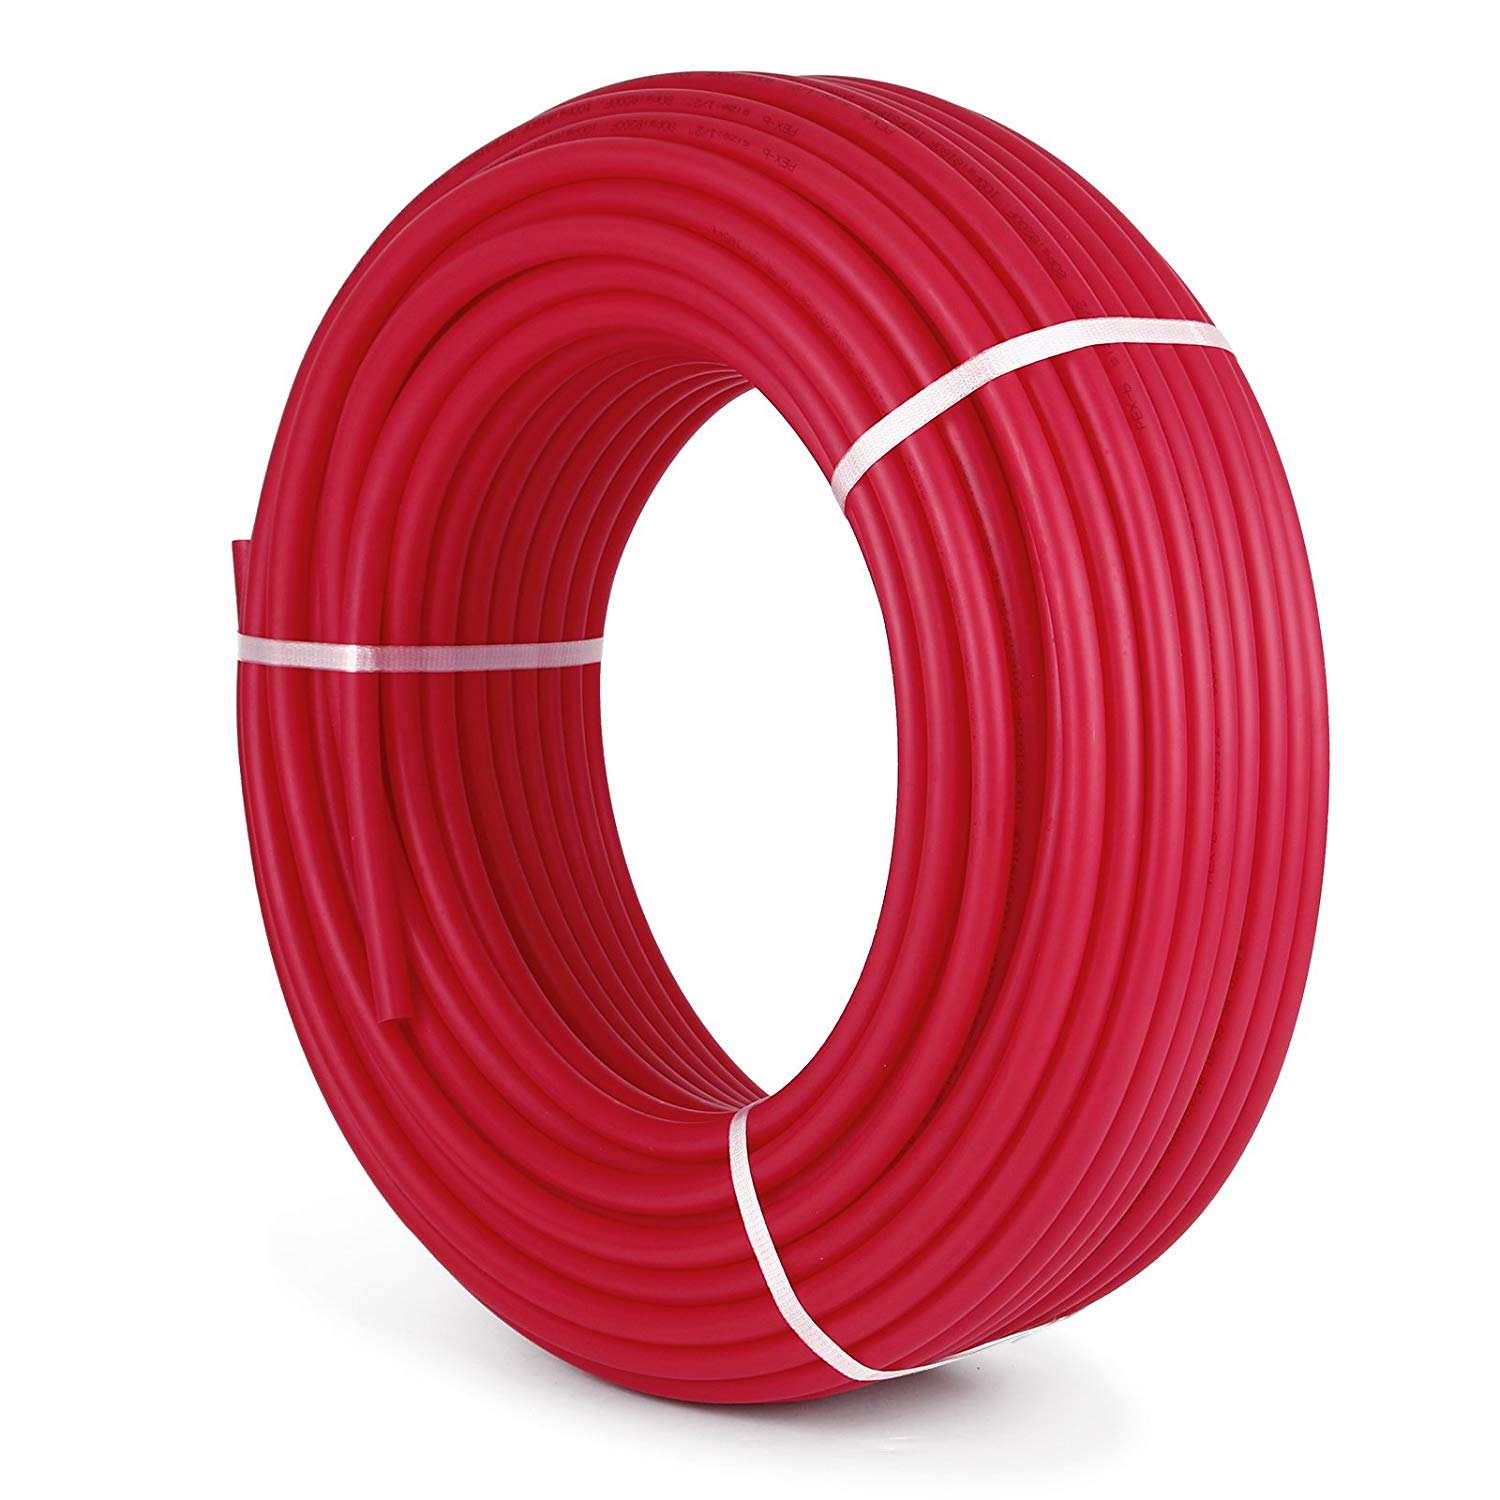 BestEquip 1/2 Inch PEX Tubing Potable Water Tube 300 FT PEX-B Plumbing Pipe Non-Barrier Radiant Heating Pex Coil for Water Plumbing Open Loop Hydronic Heating Systems